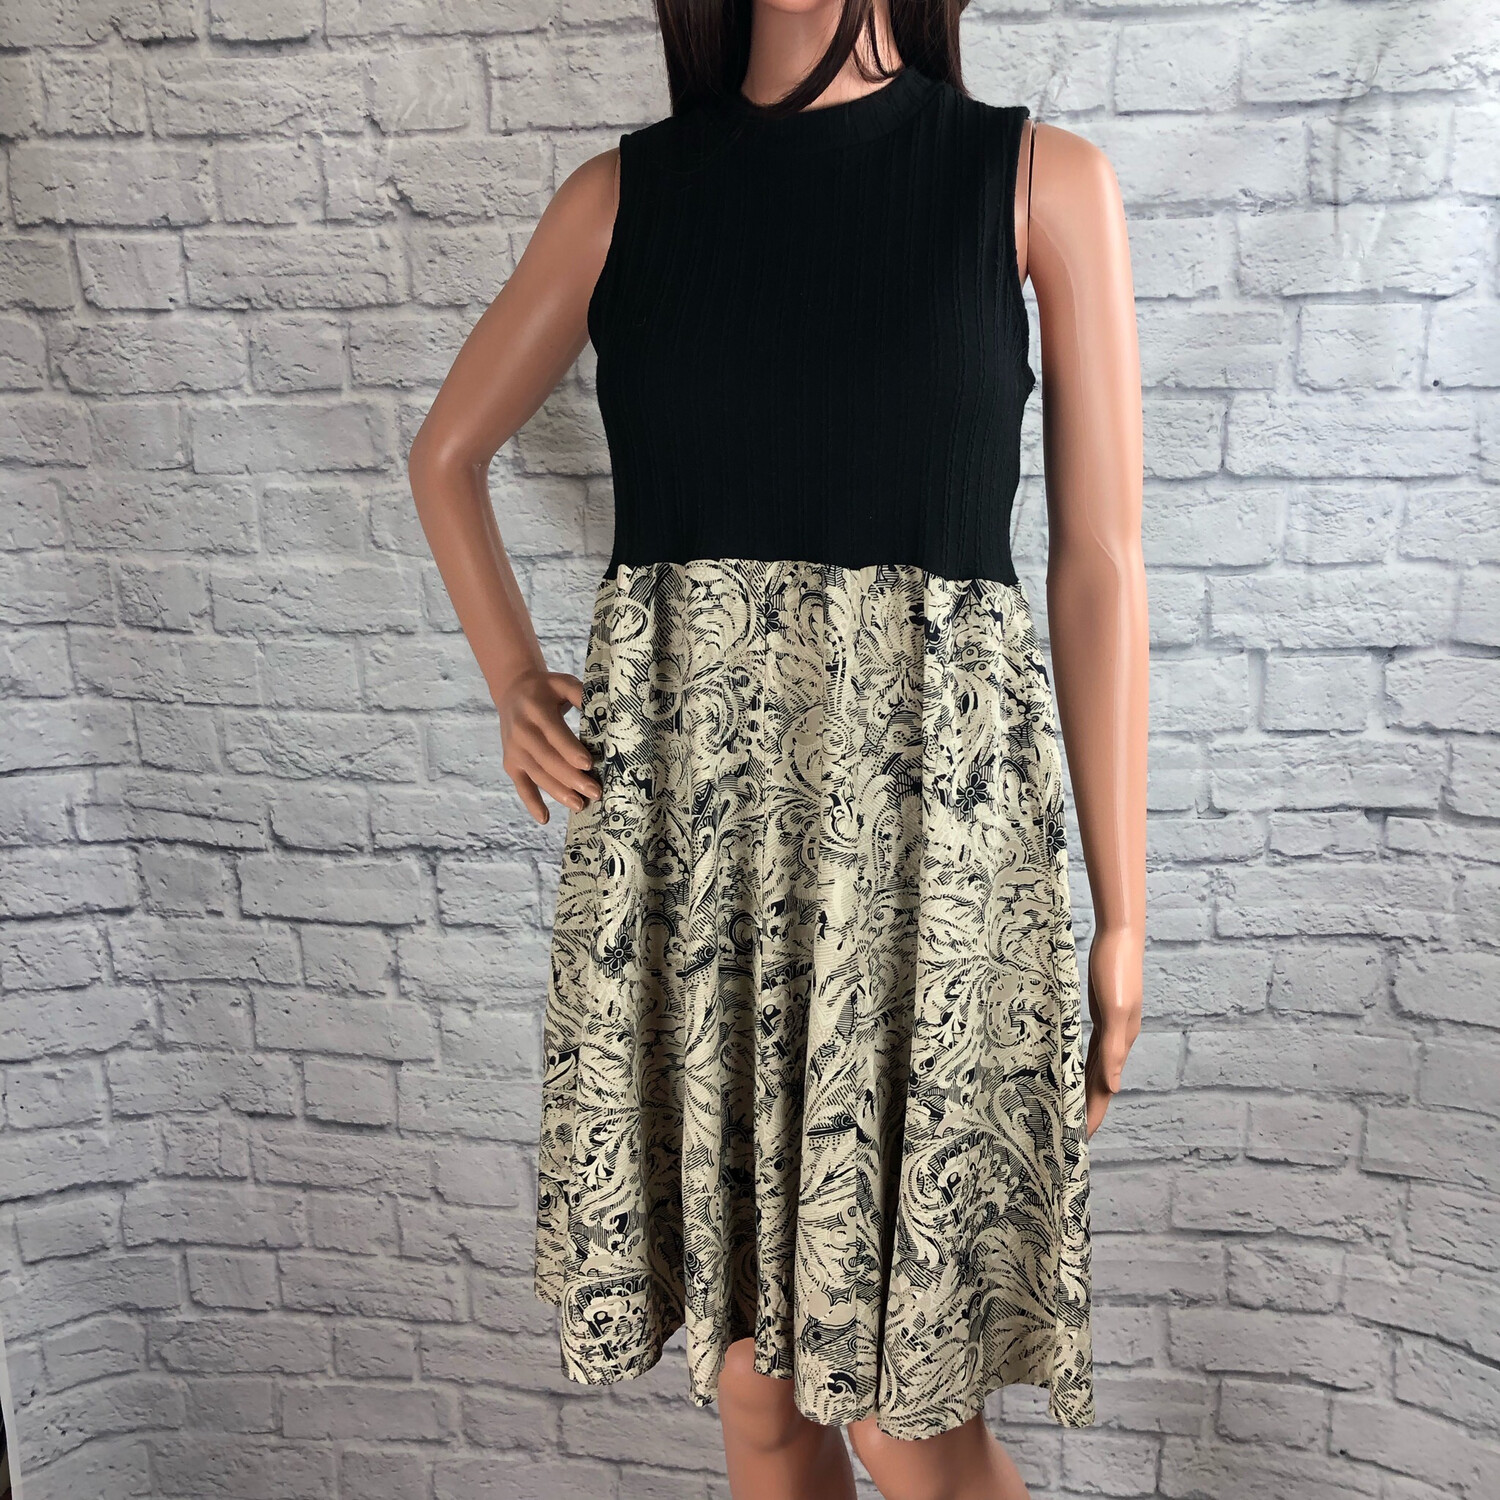 S Threads Upcycled Dress Baroque Print Ribbed Knit Size M/L